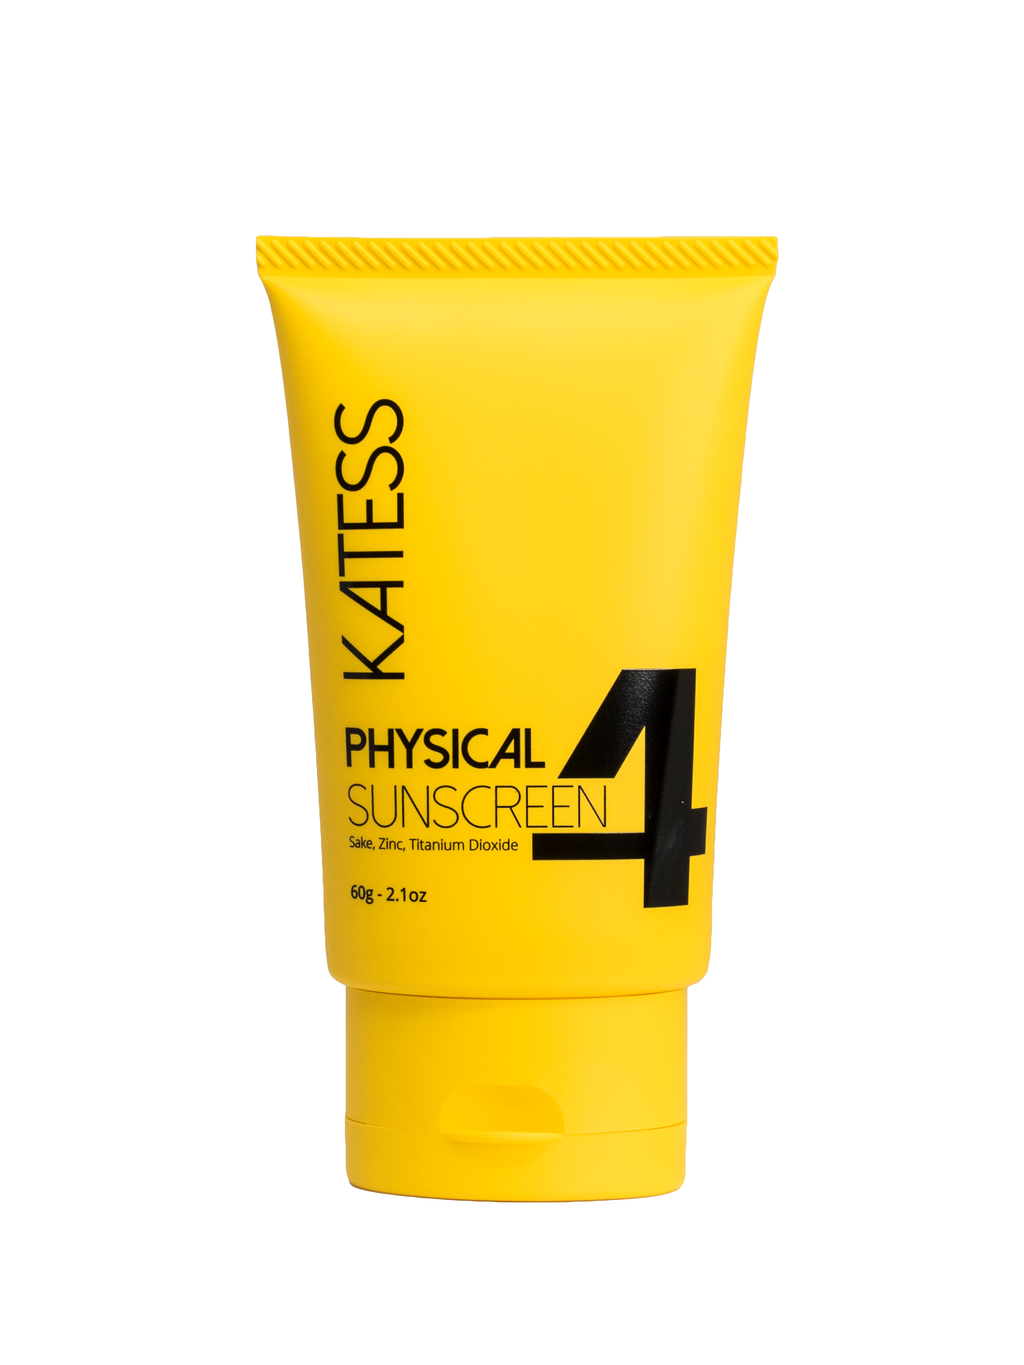 Physical Sunscreen